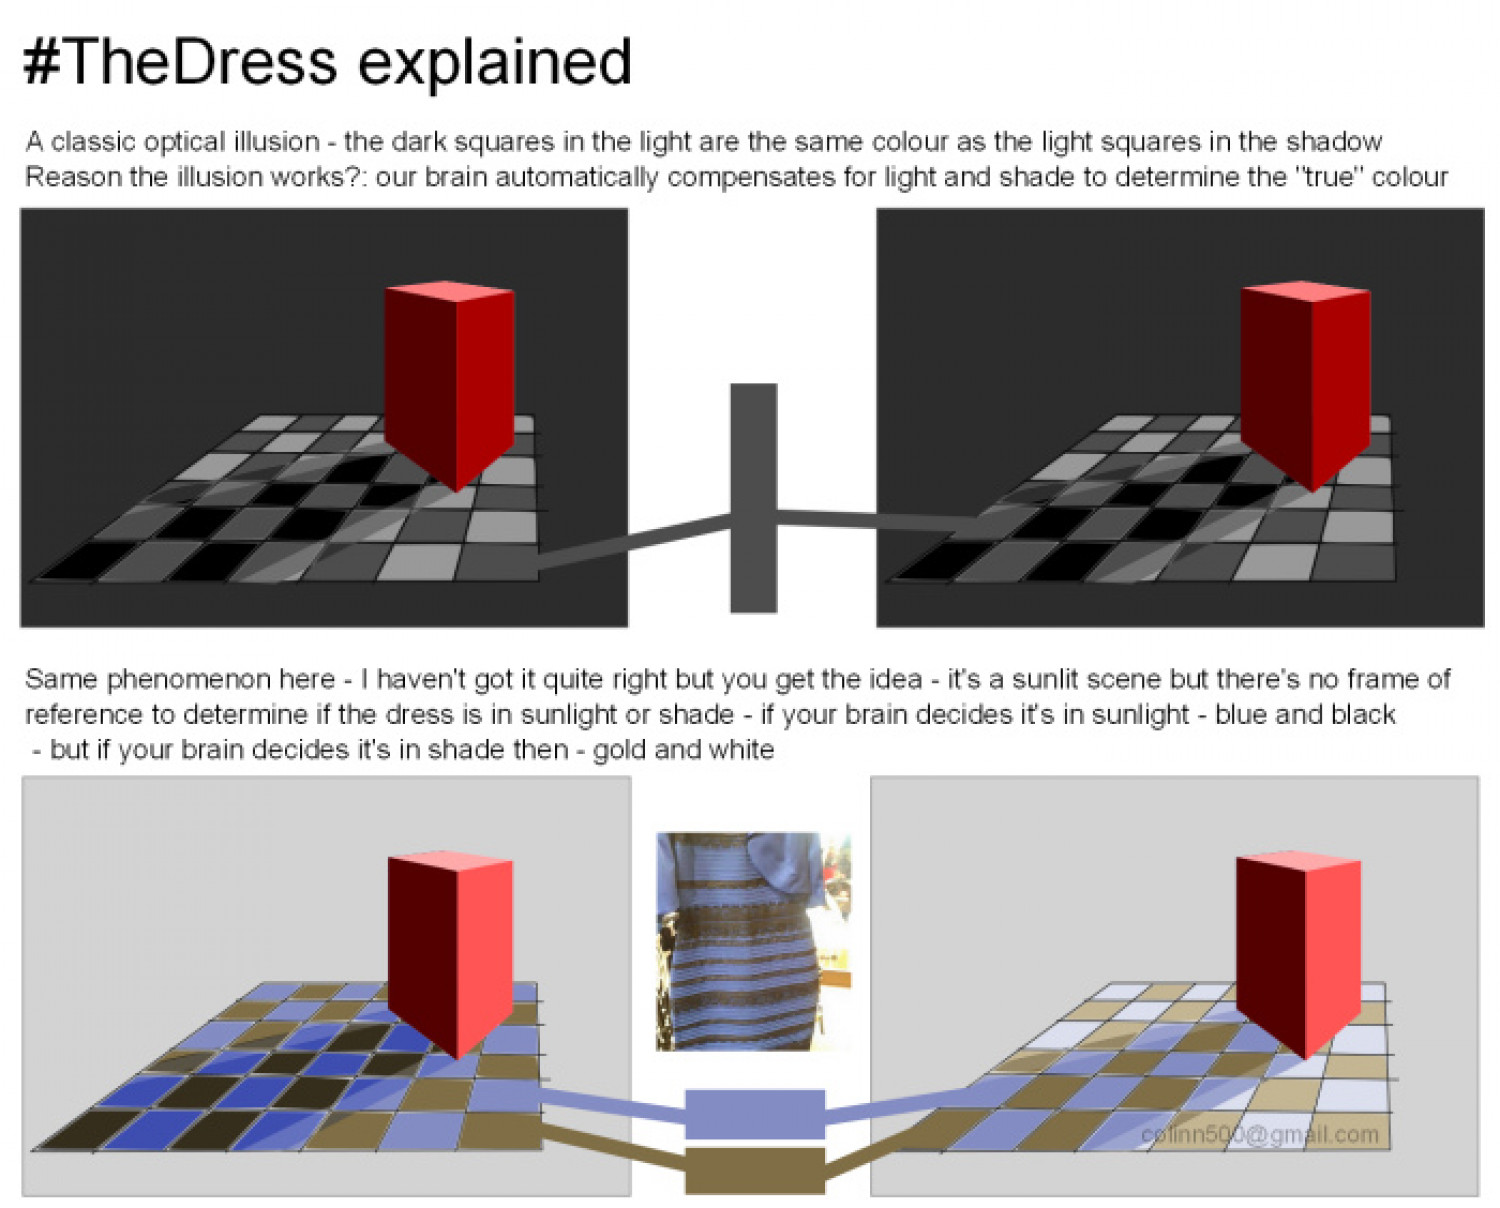 The dress explained -  Thedress Explained Infographic